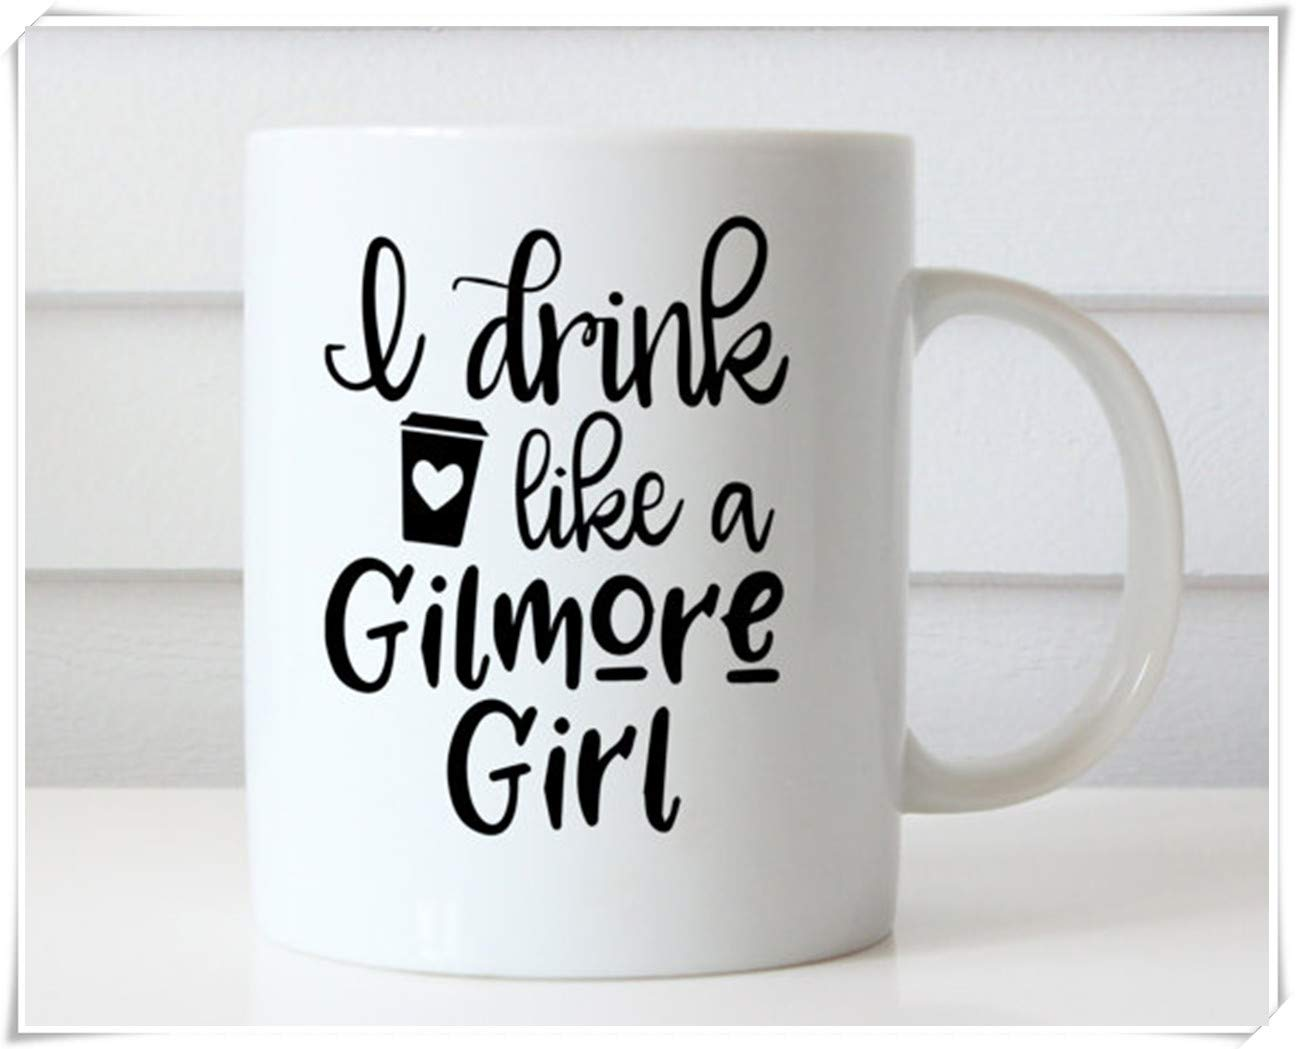 Mother Daughter Friend Gift Gilmore Girls Cup I Drink Coffee Like a Gilmore Mug